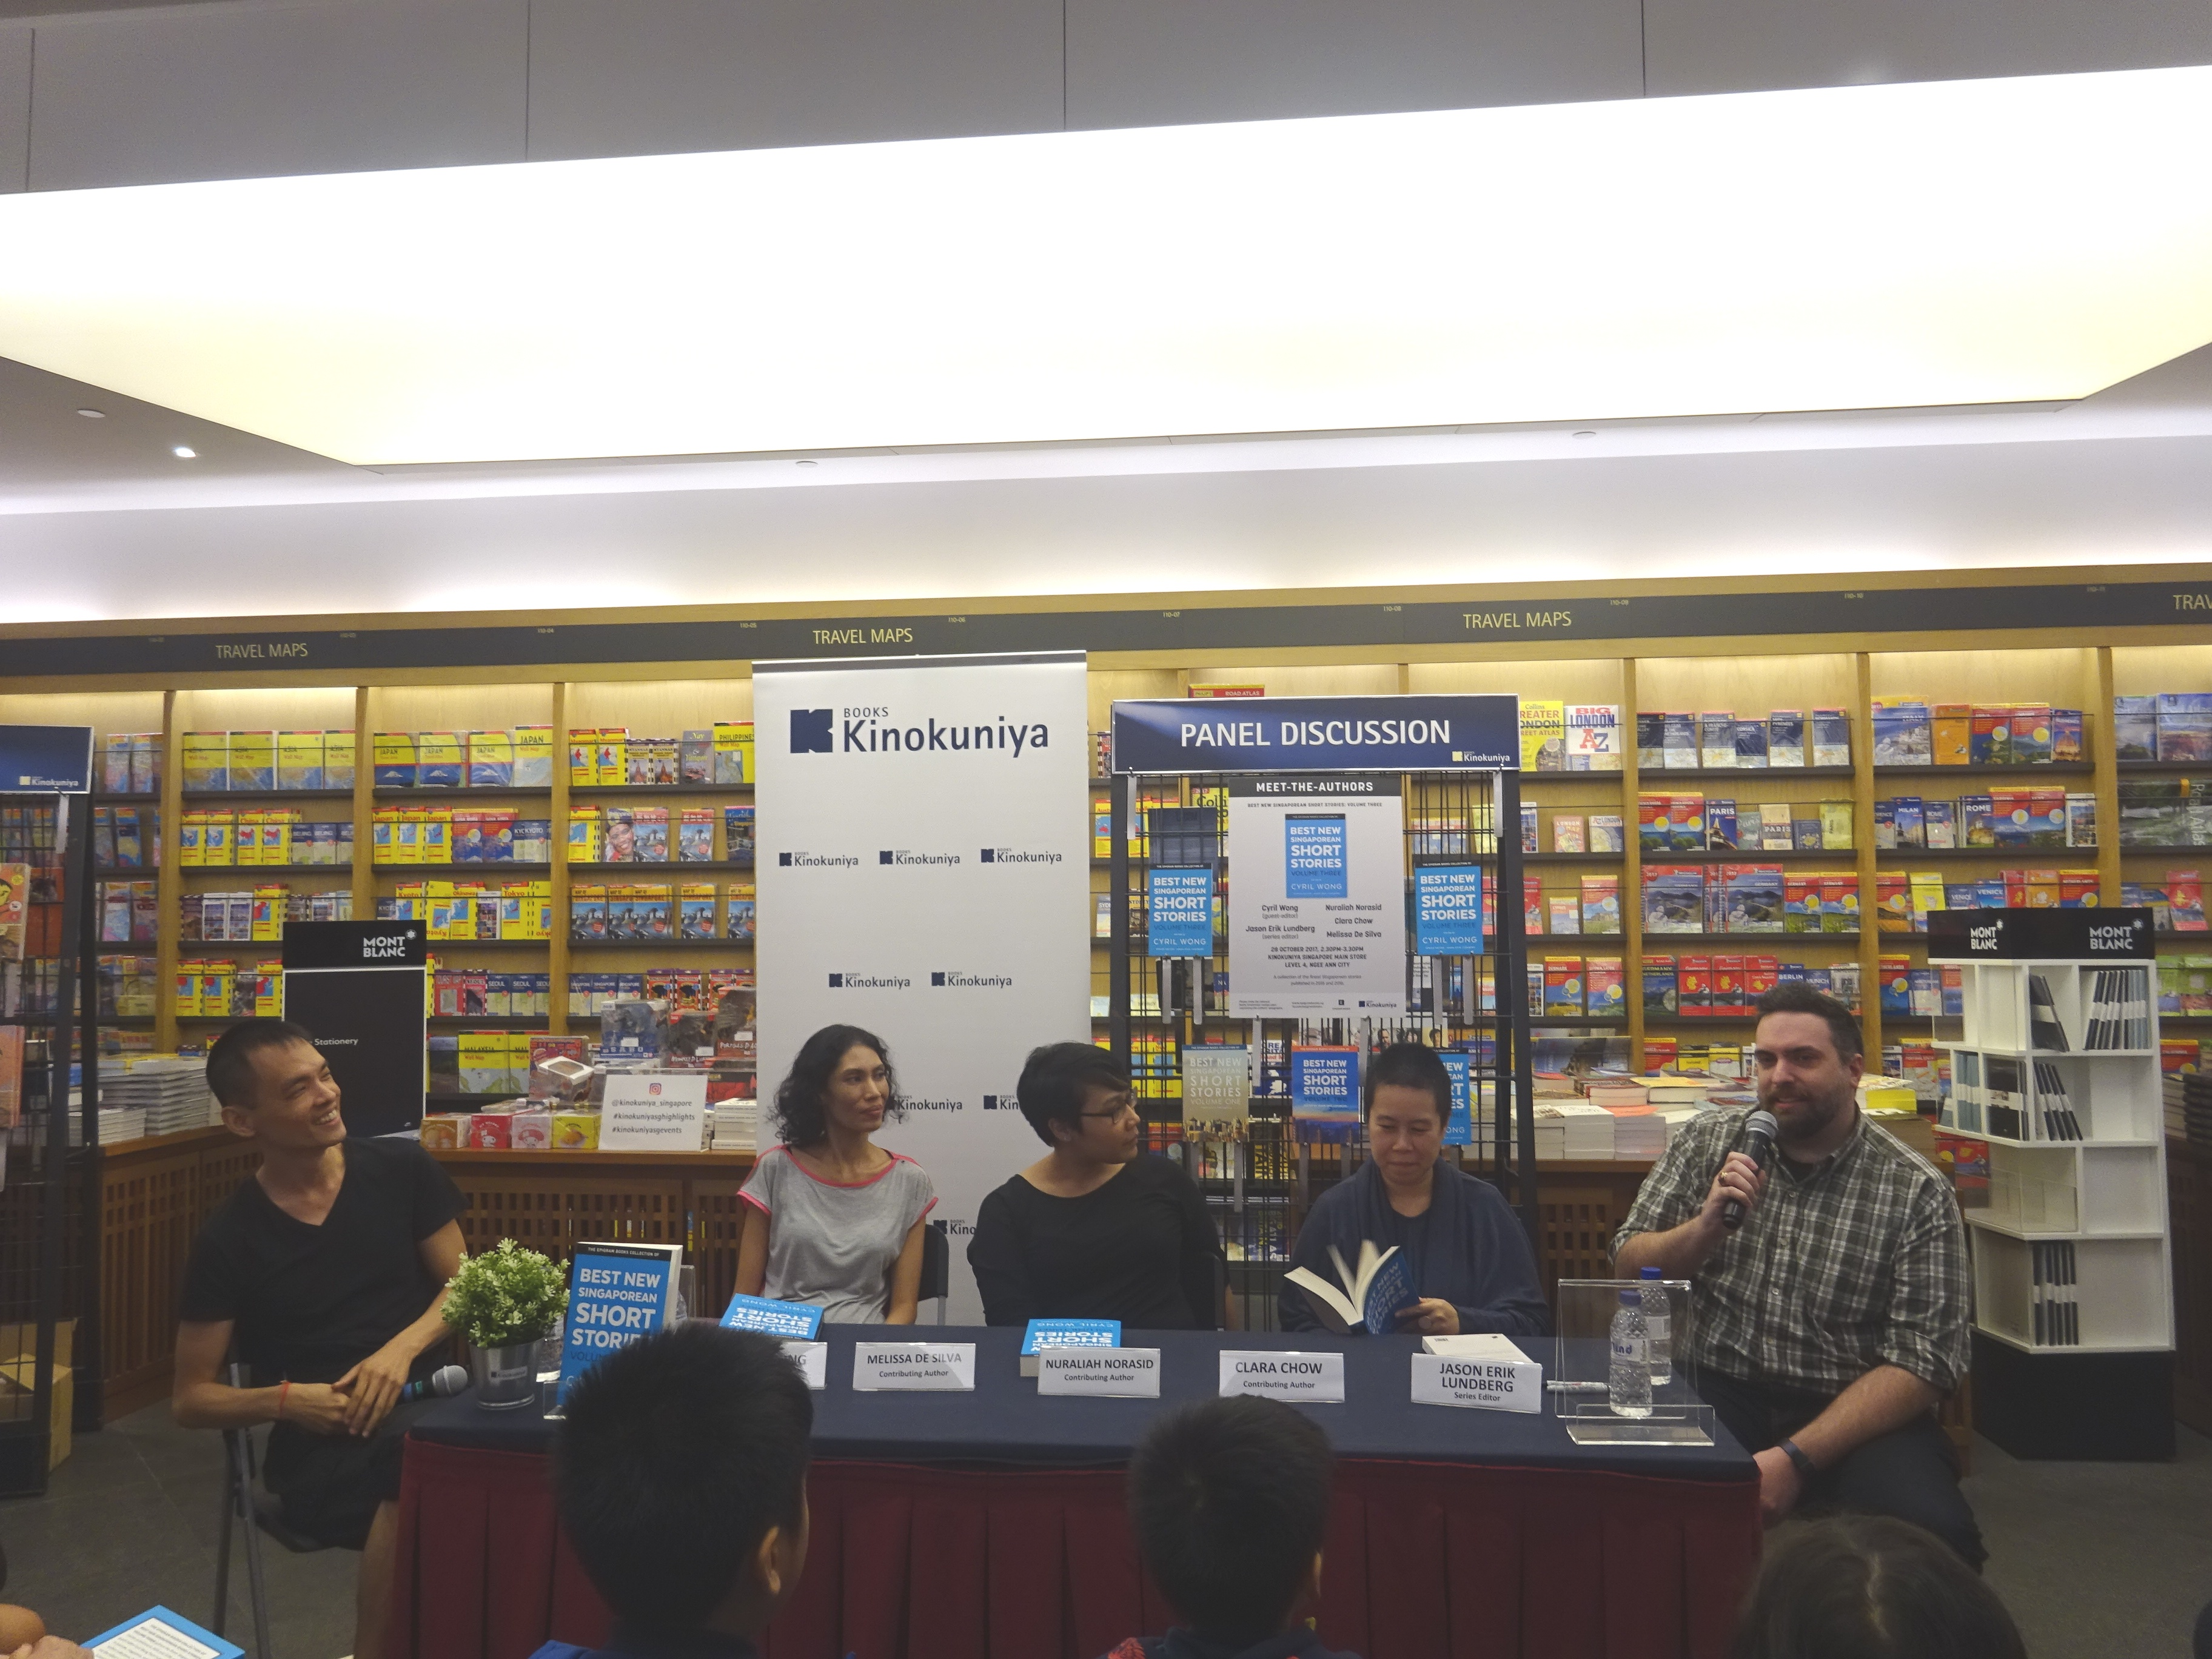 Best Short Books 2020 PANEL DISCUSSION: THE EPIGRAM BOOKS COLLECTION OF BEST NEW